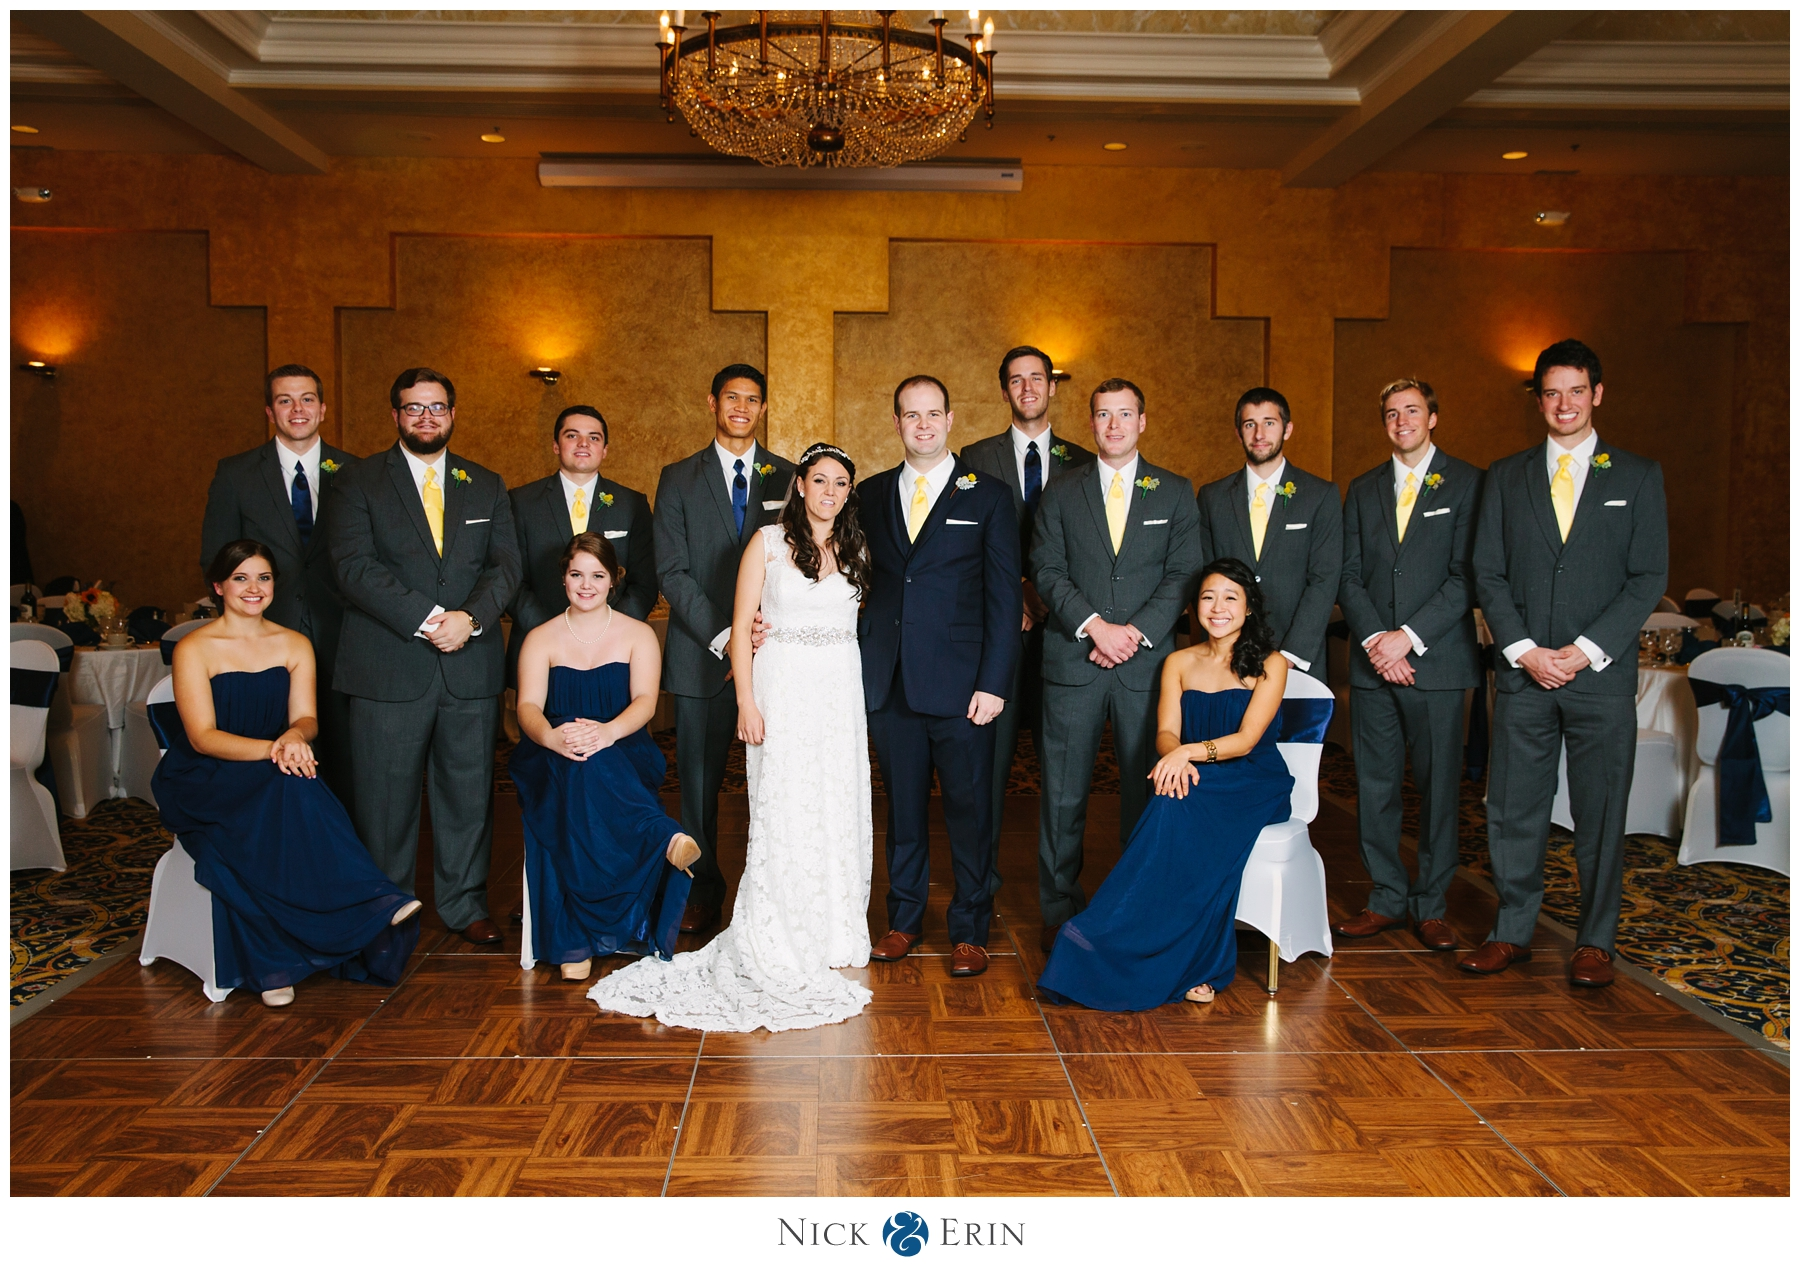 Donner_Photography_Fort Myer Wedding_Katie & Will_0040